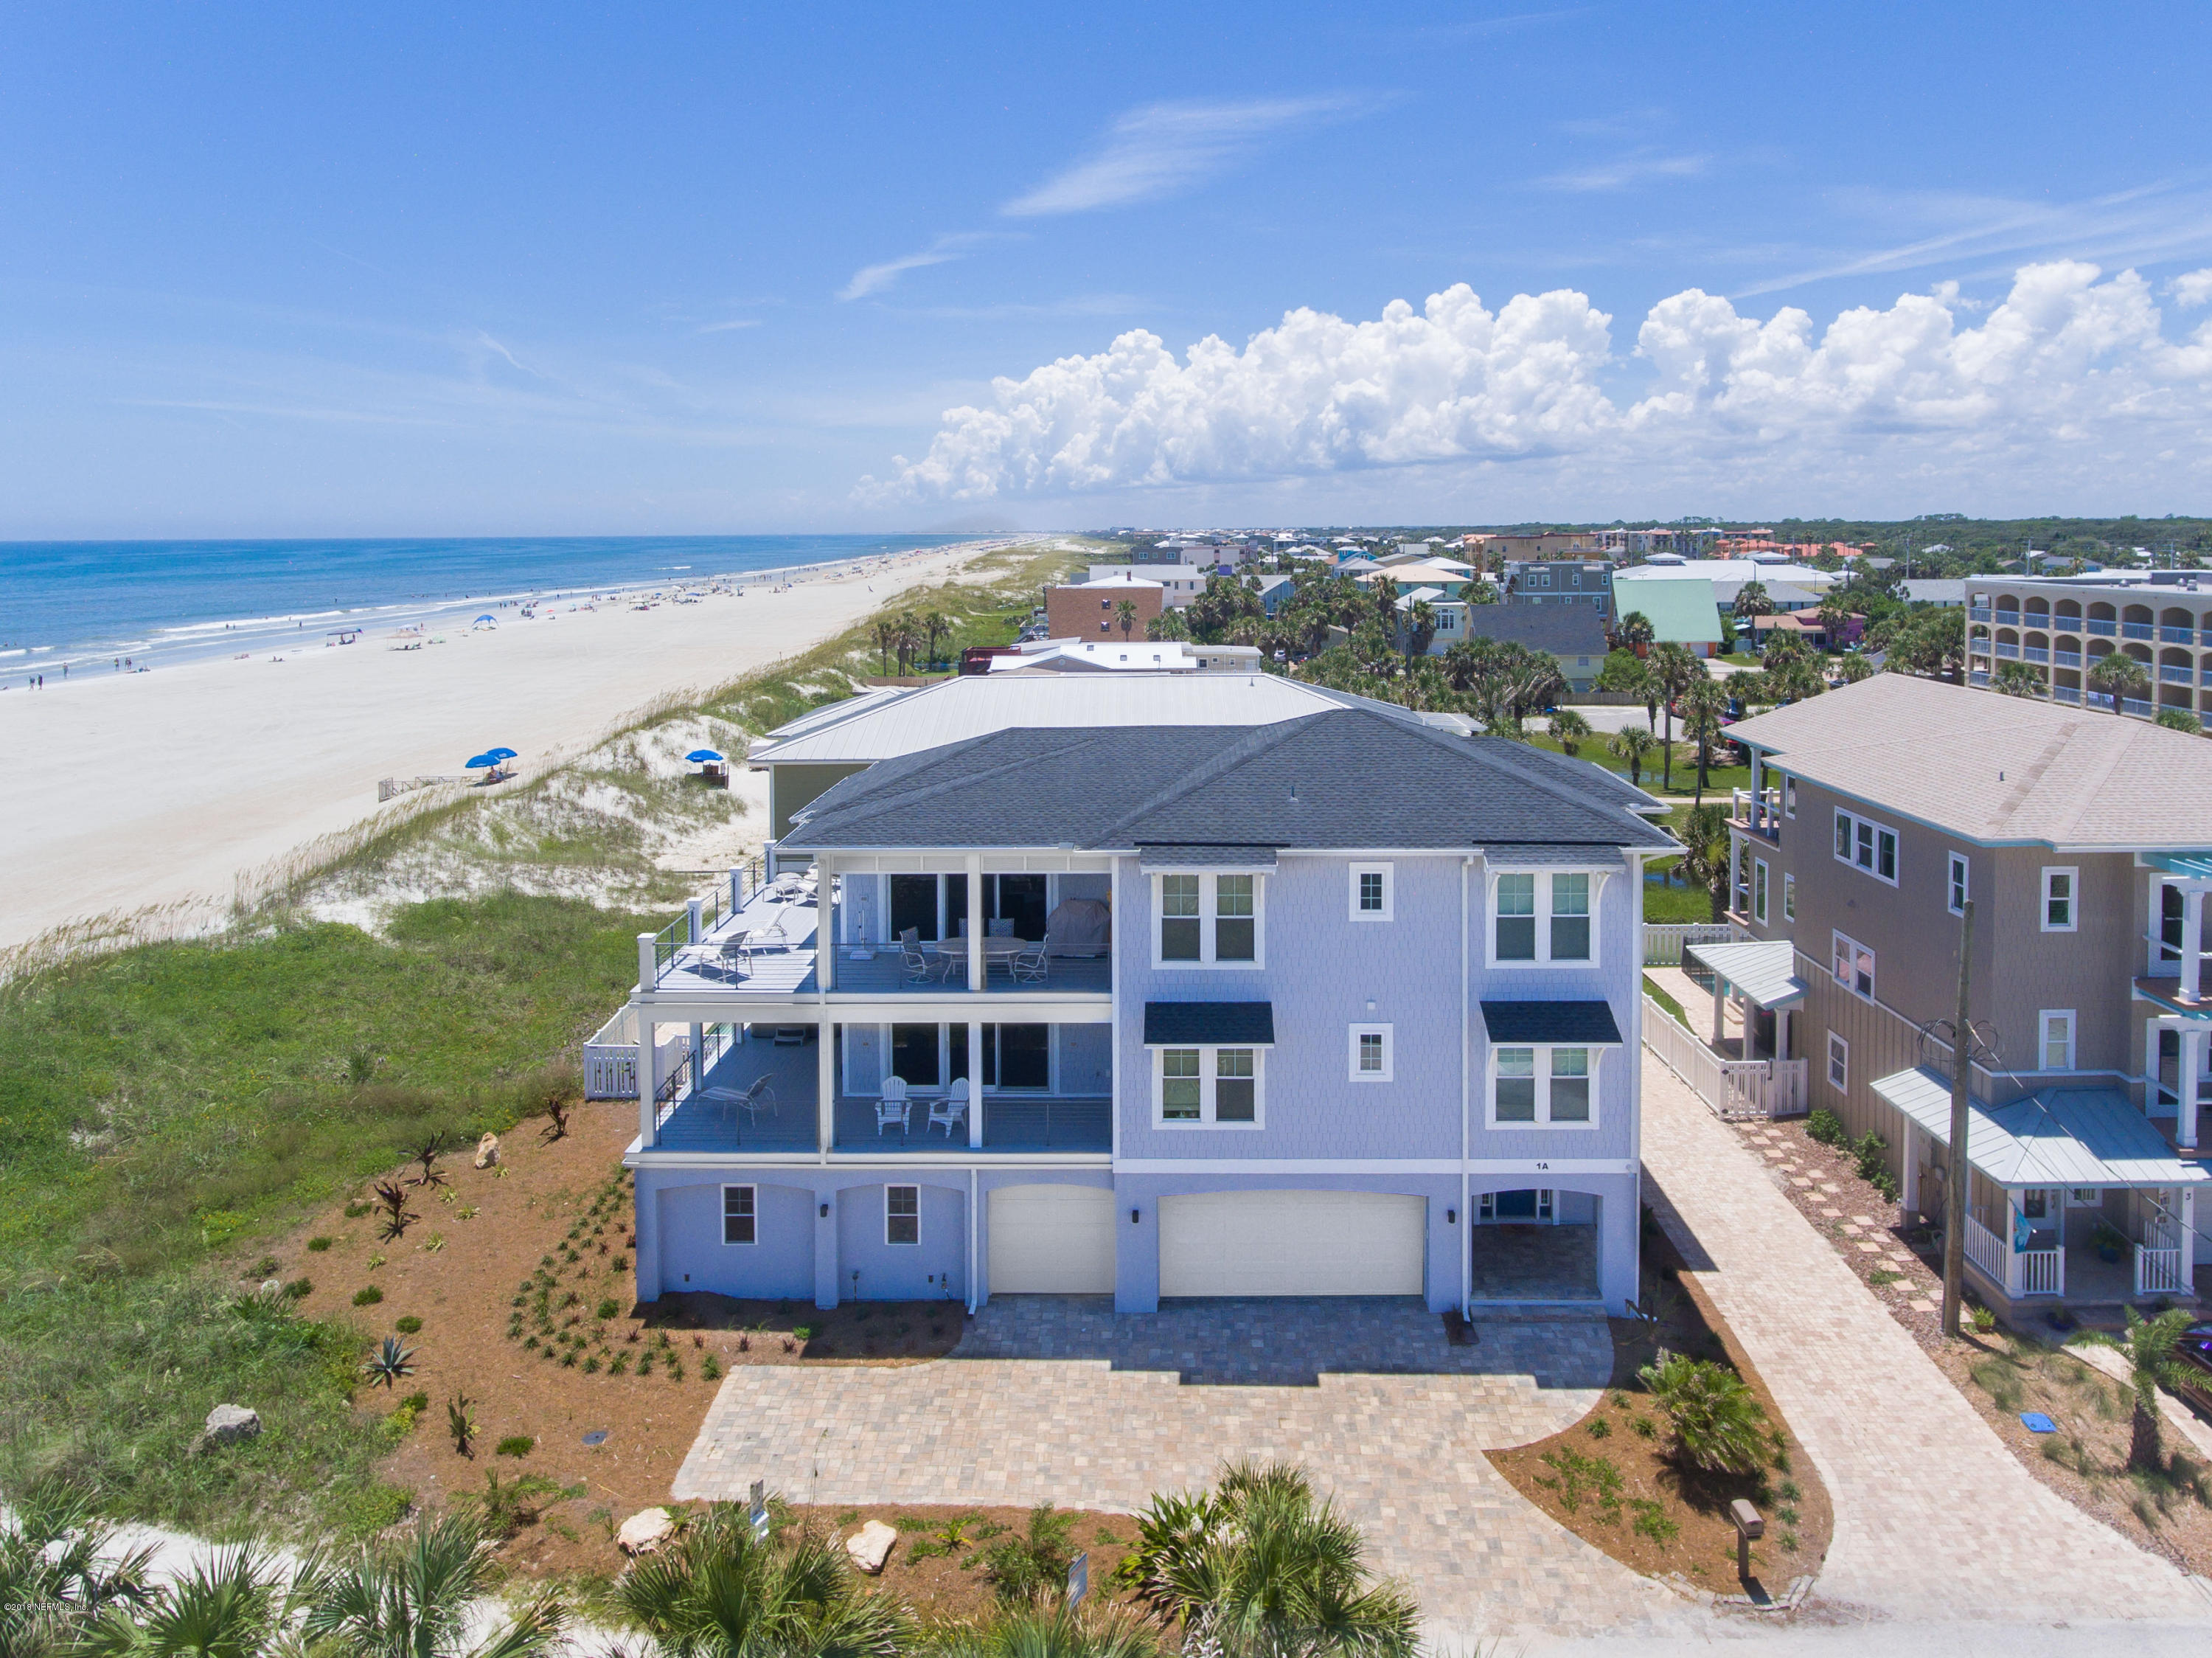 1A 15TH, ST AUGUSTINE BEACH, FLORIDA 32080, 4 Bedrooms Bedrooms, ,4 BathroomsBathrooms,Residential - single family,For sale,15TH,938816